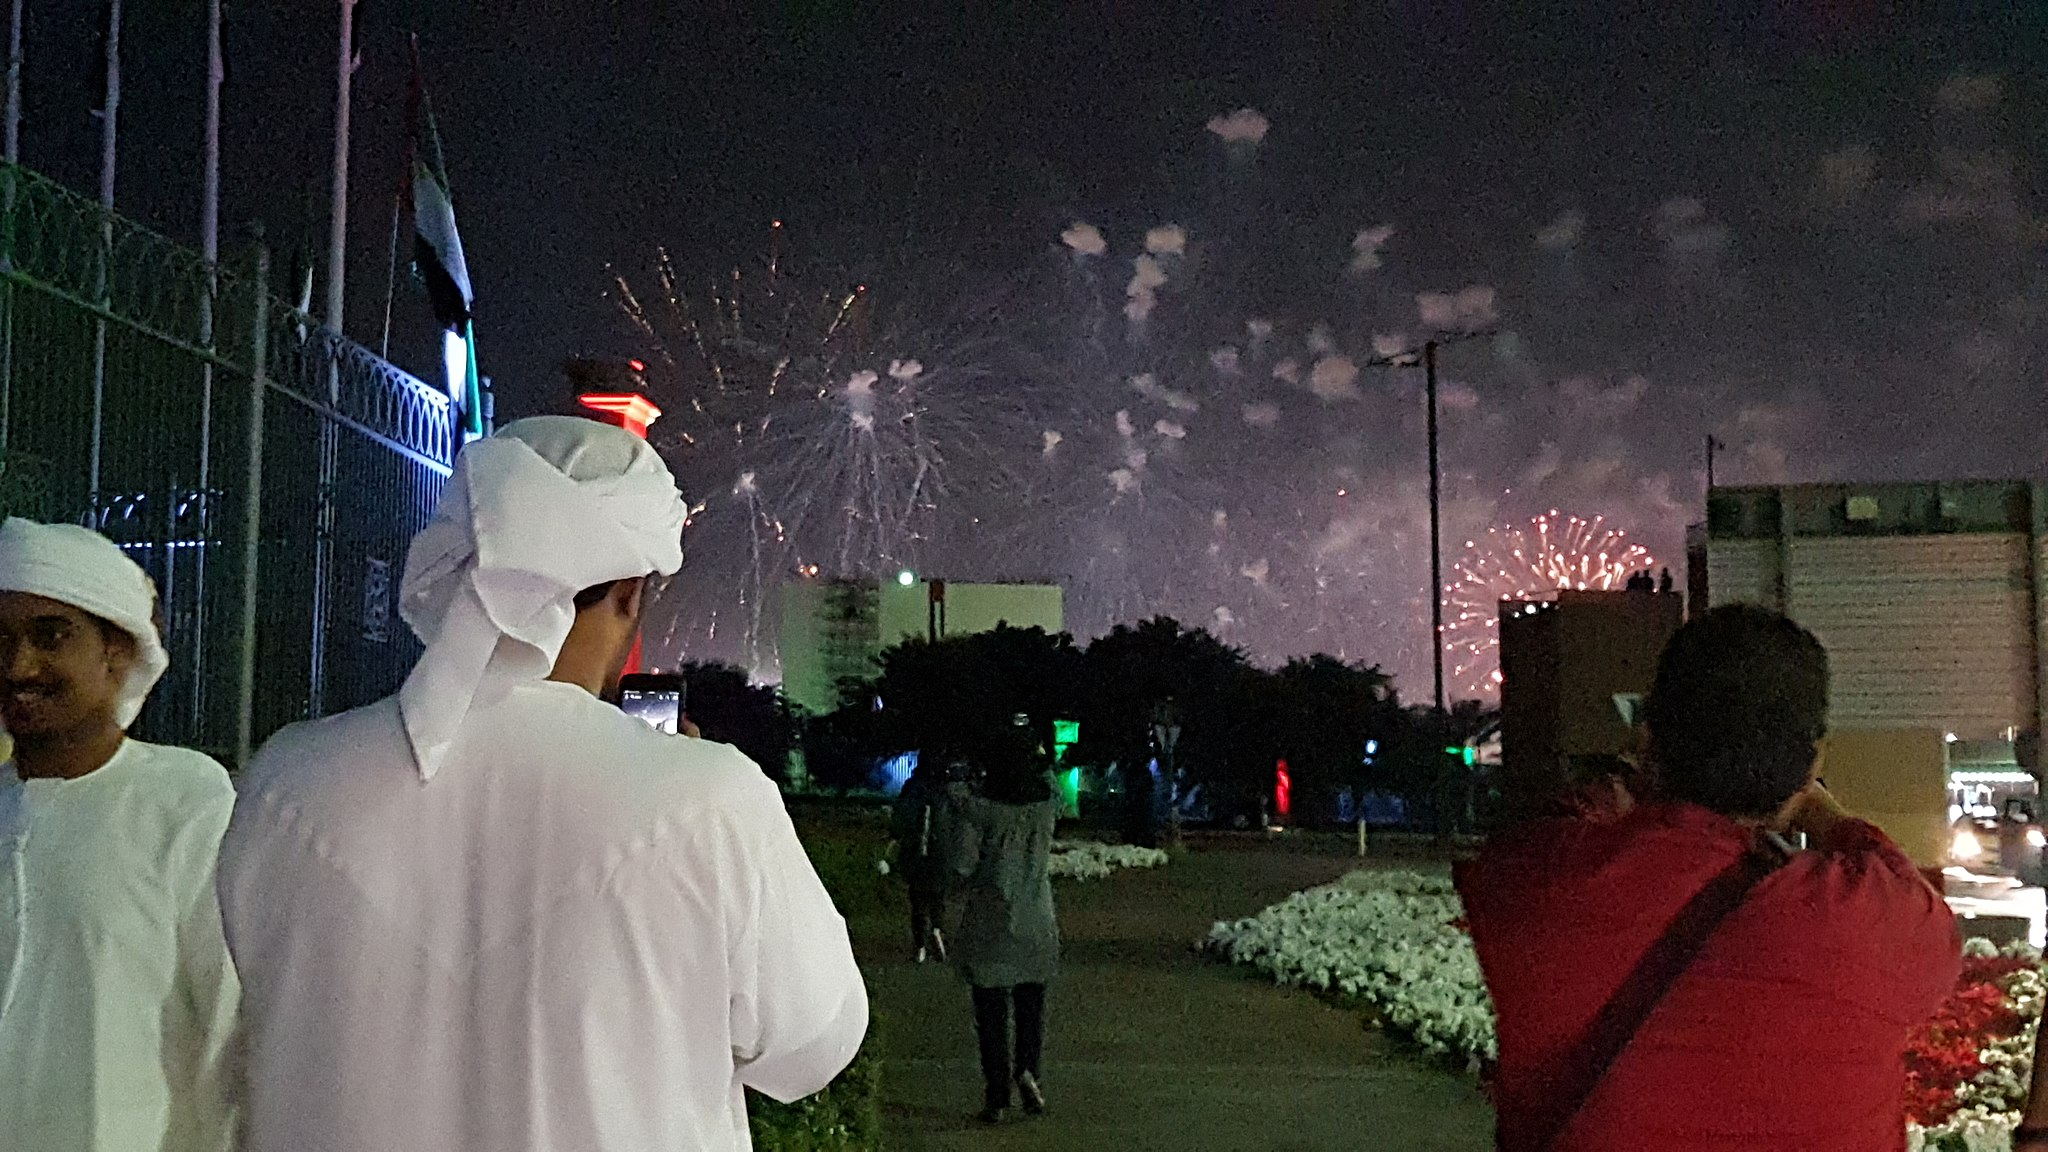 National Day Celebrations over the long weekend in Dubai